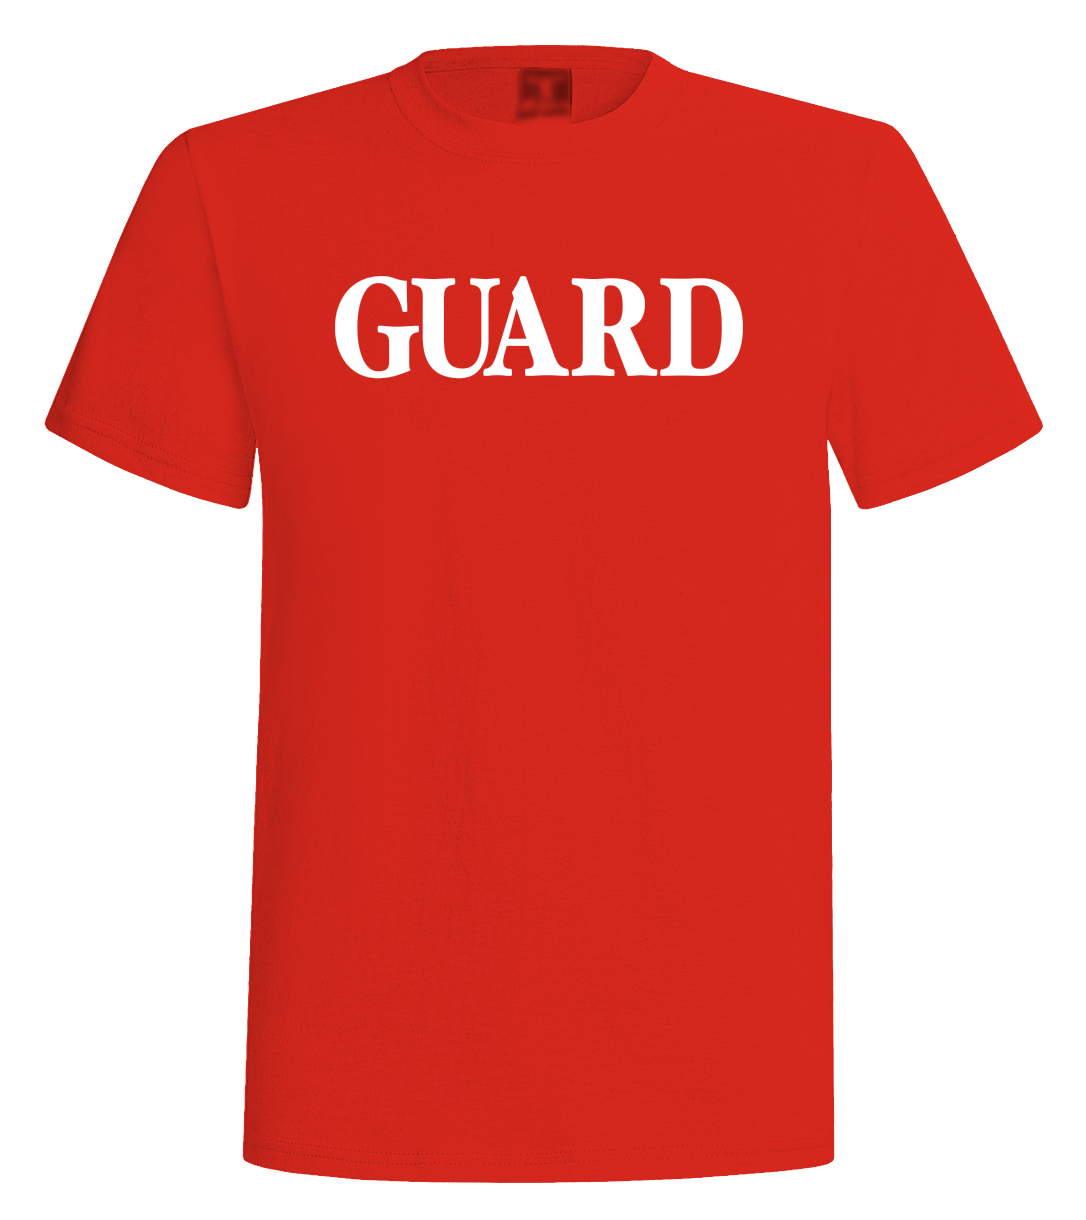 Unisex Guard Short Sleeved T-shirt